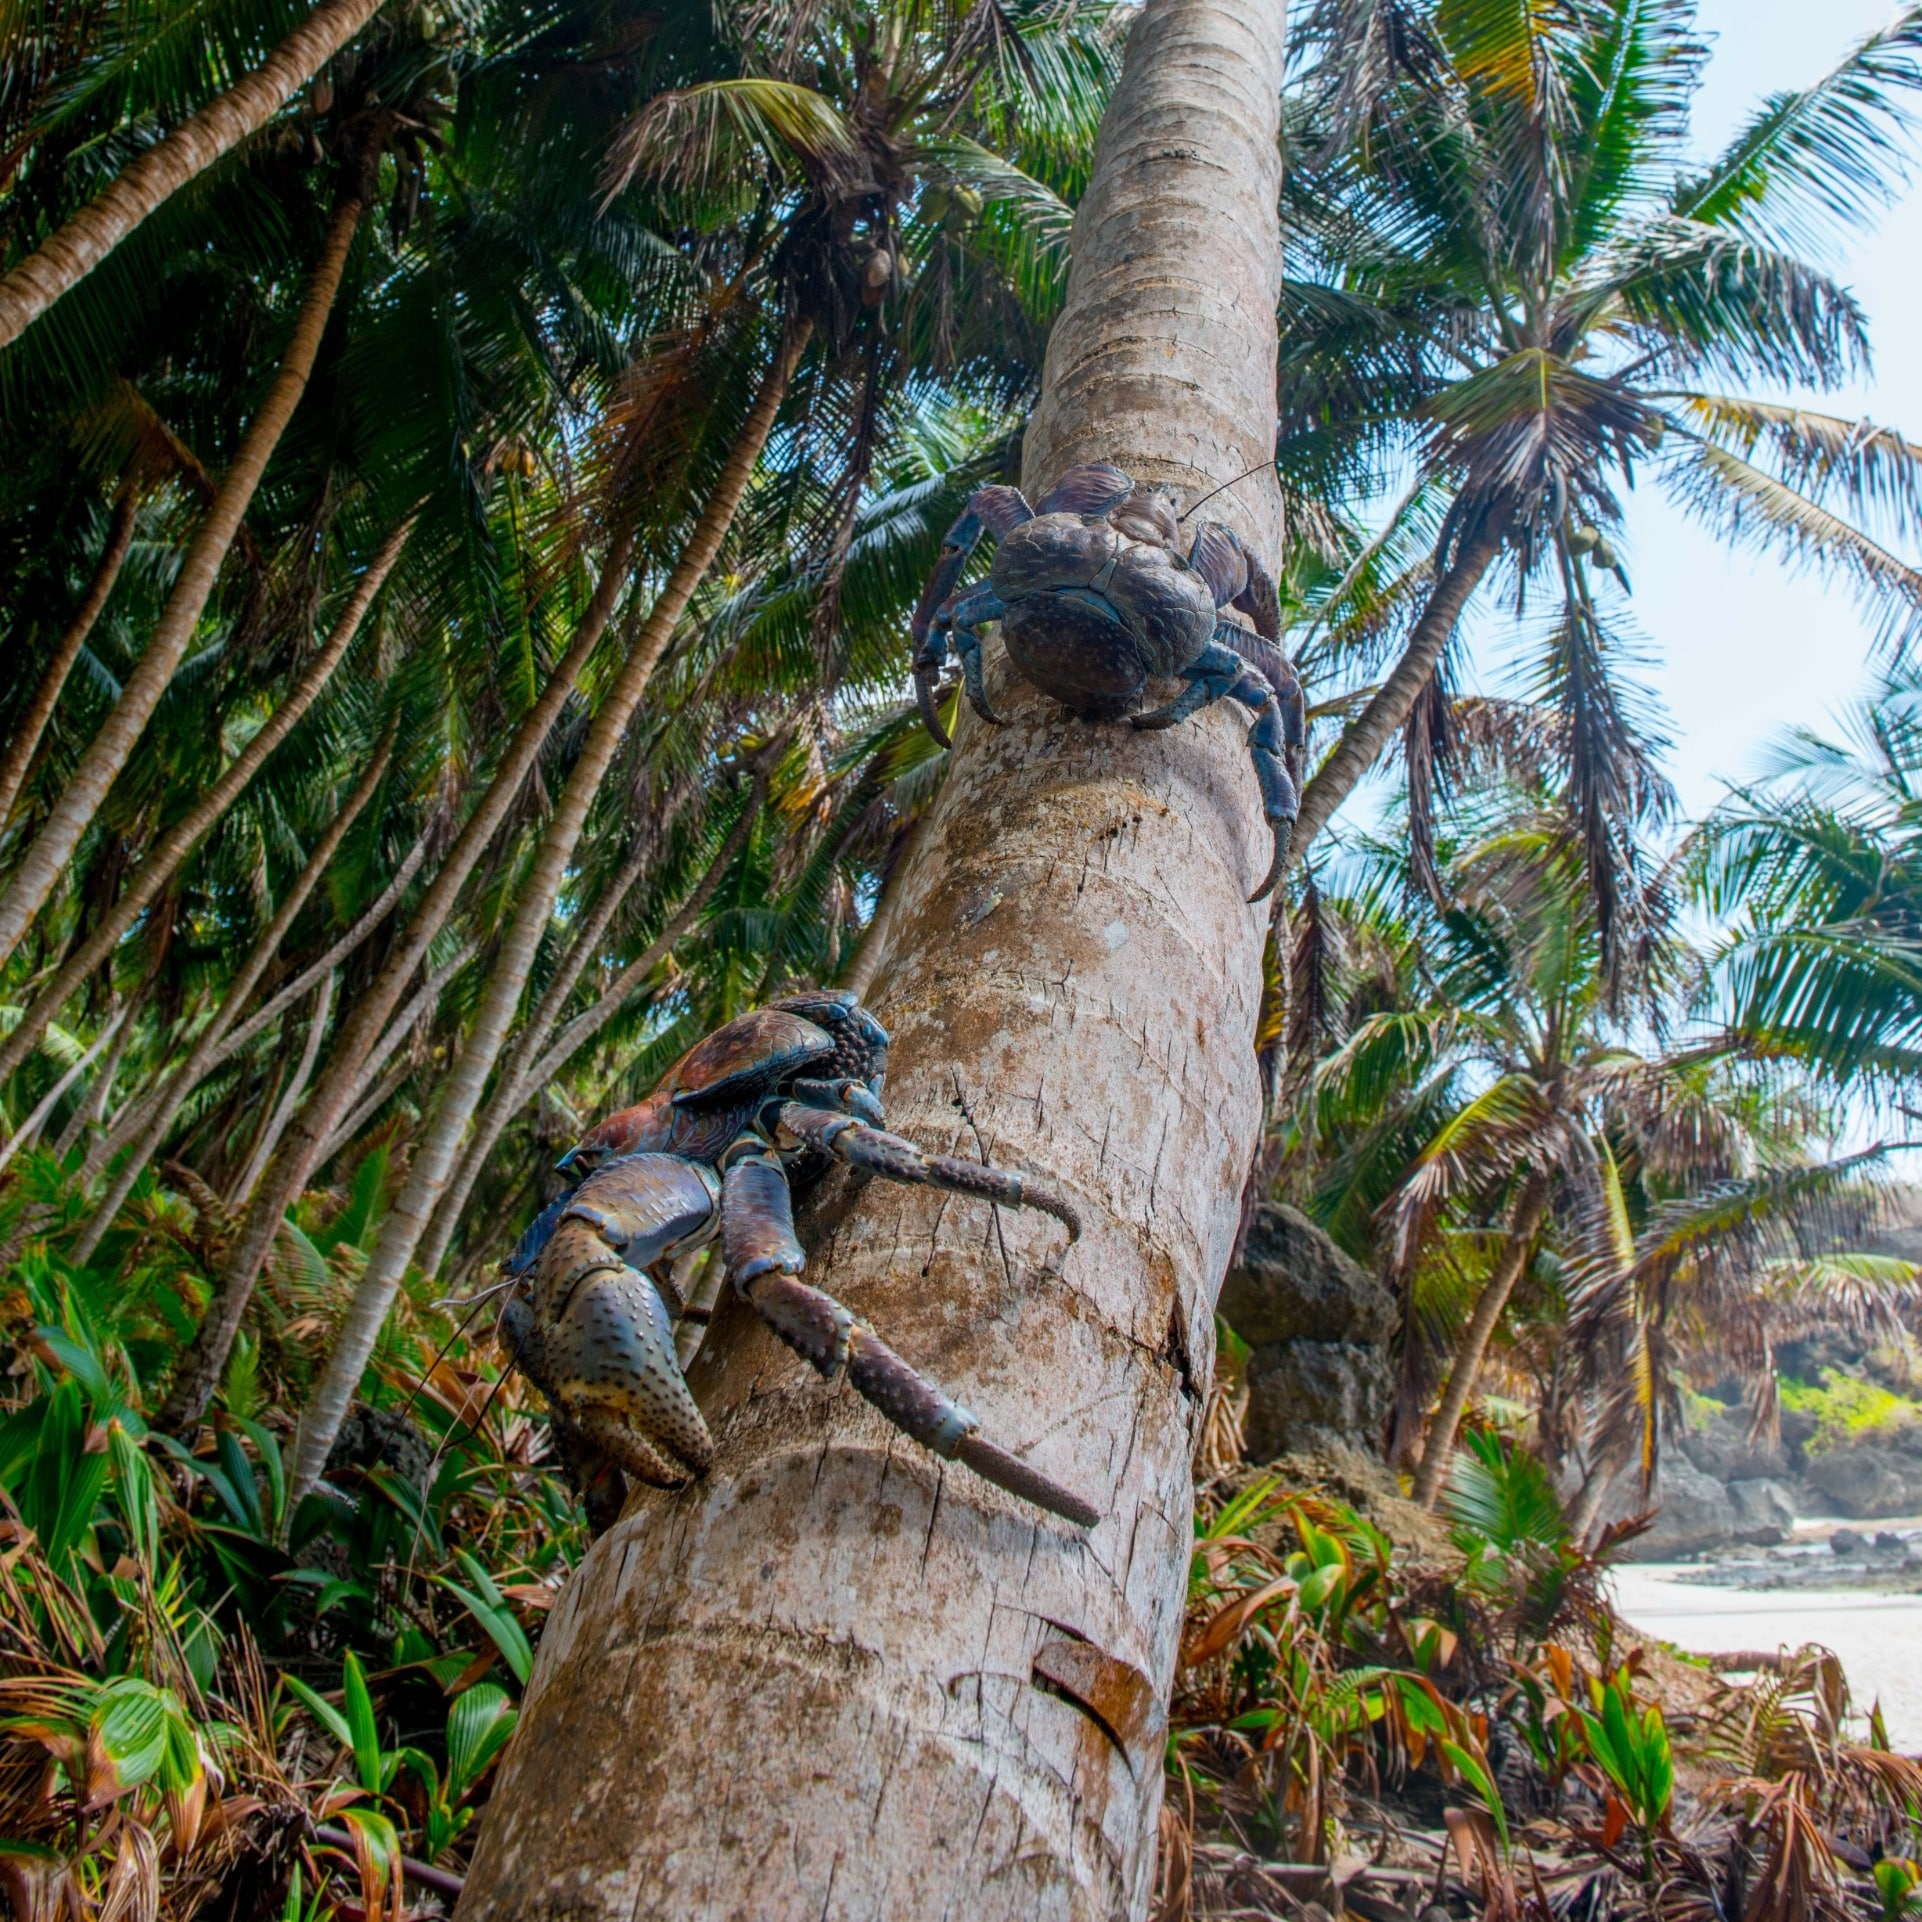 Robber crabs on a palm tree on Christmas Island © Christmas Island Tourism Association